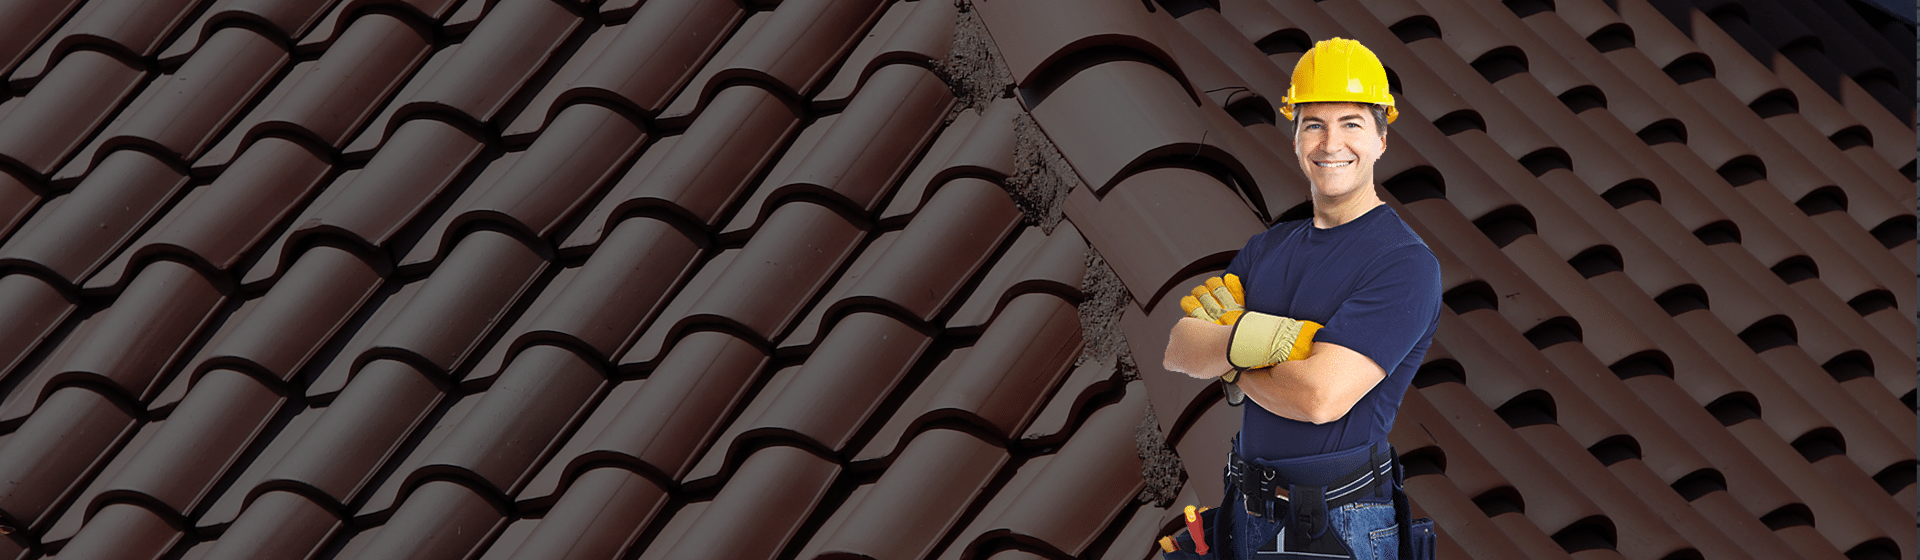 tile roof service